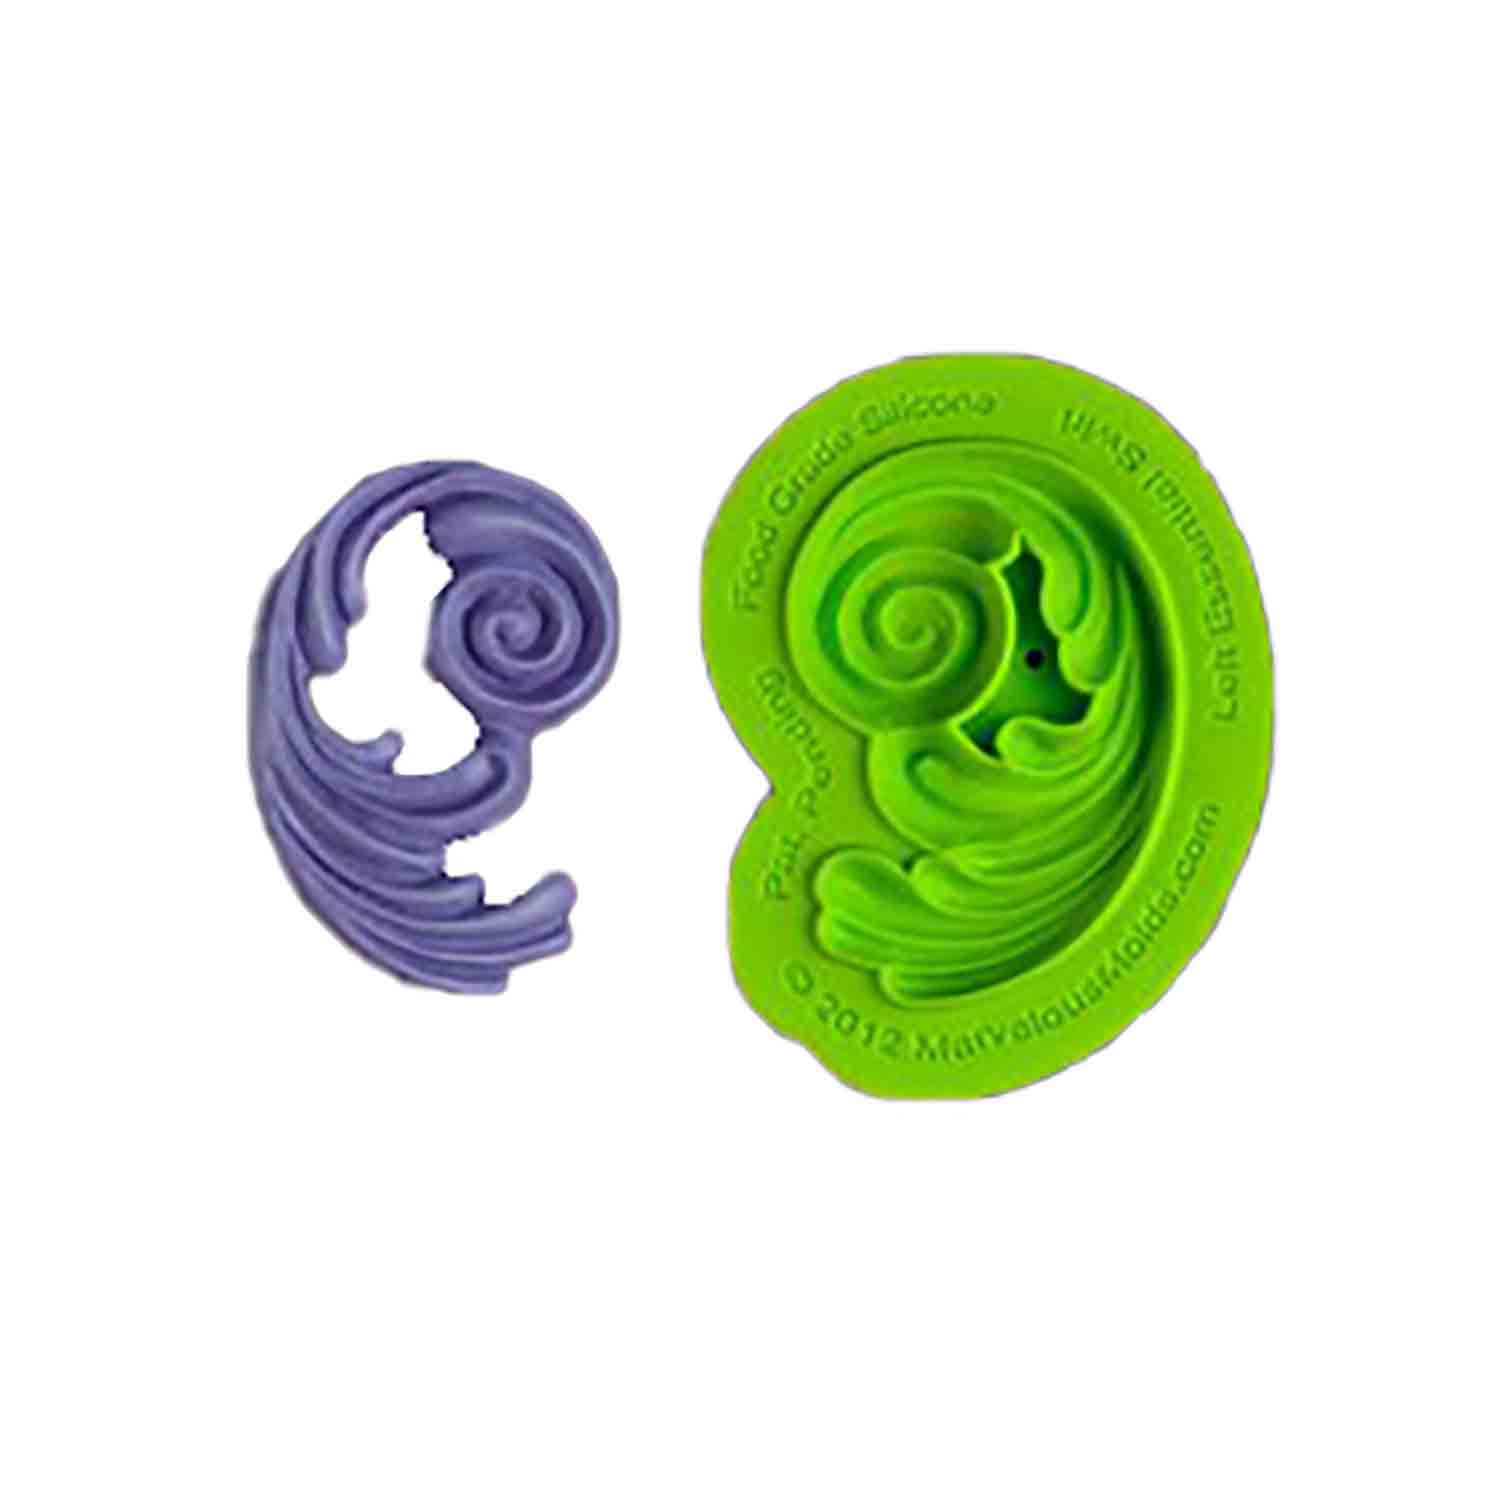 Left Swirl Silicone Mold